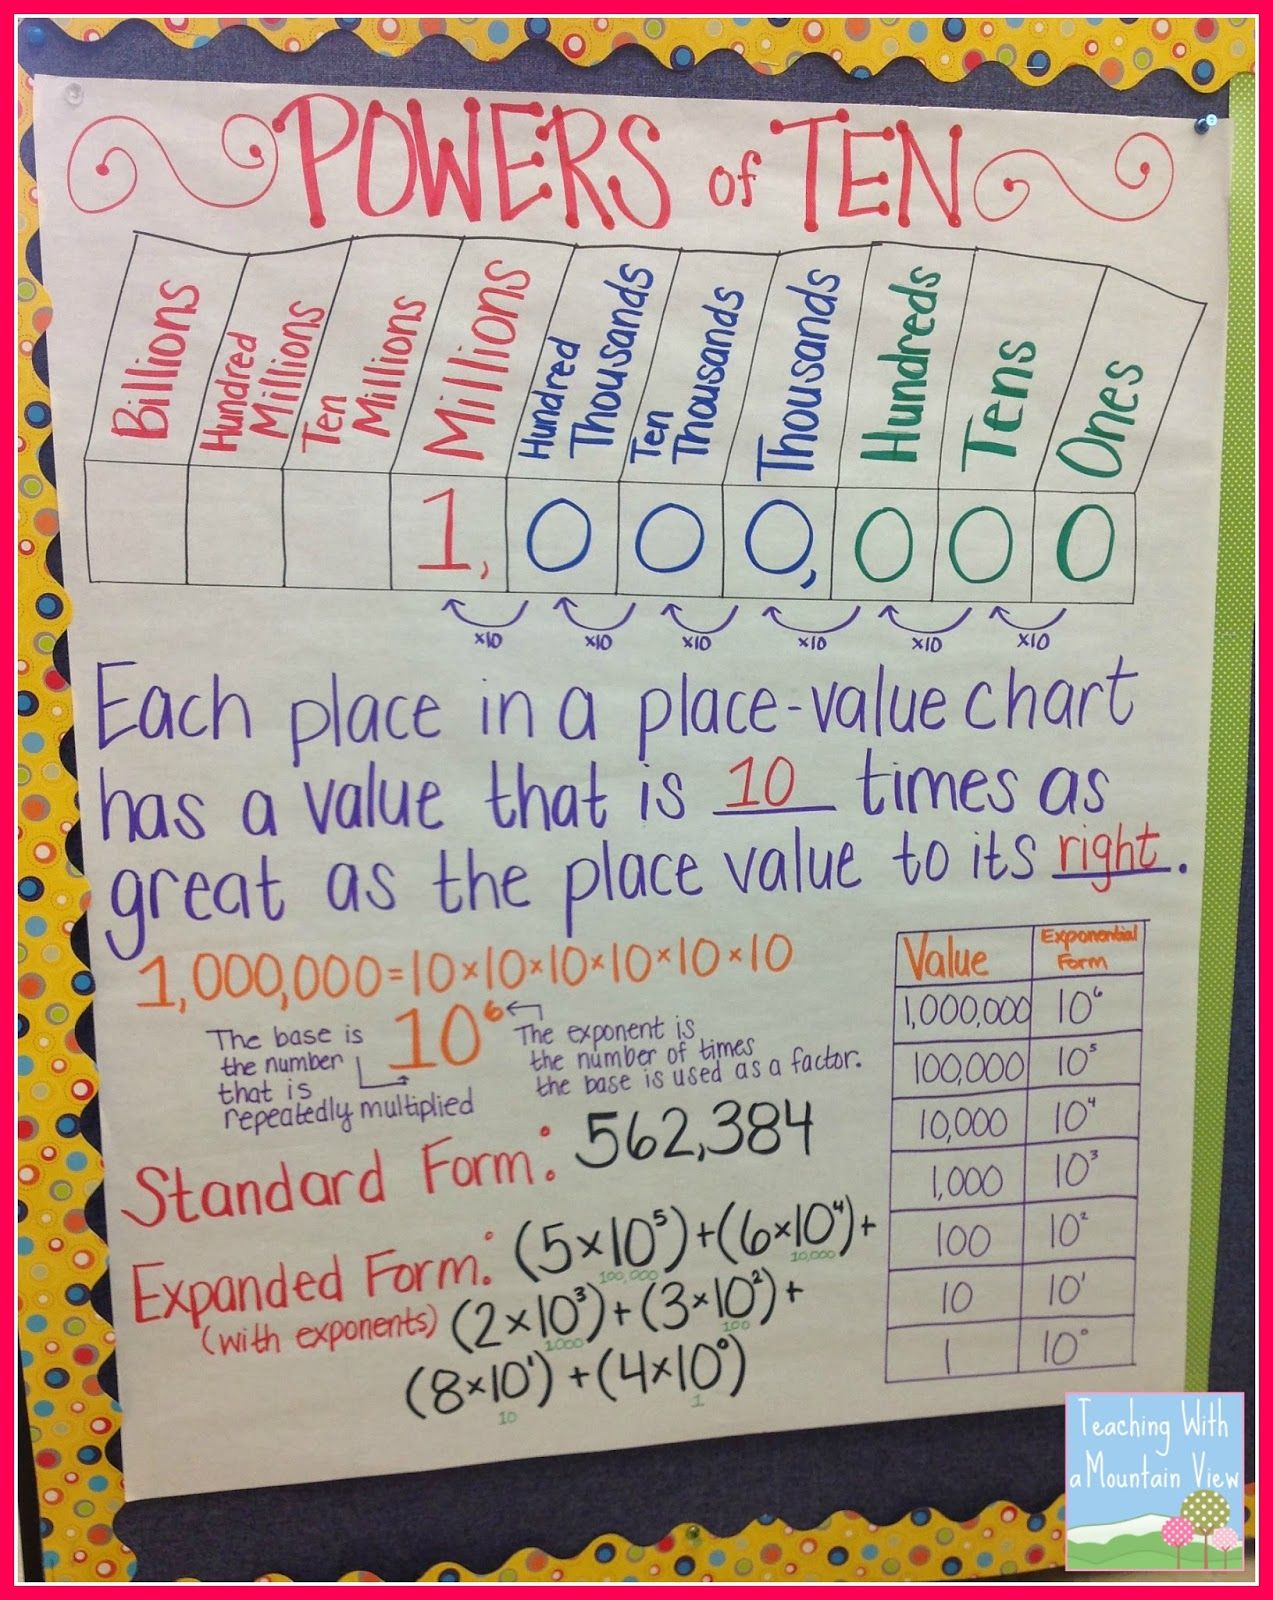 worksheet Place Value Chart 5th Grade teaching exponents place values and powers of 10 group